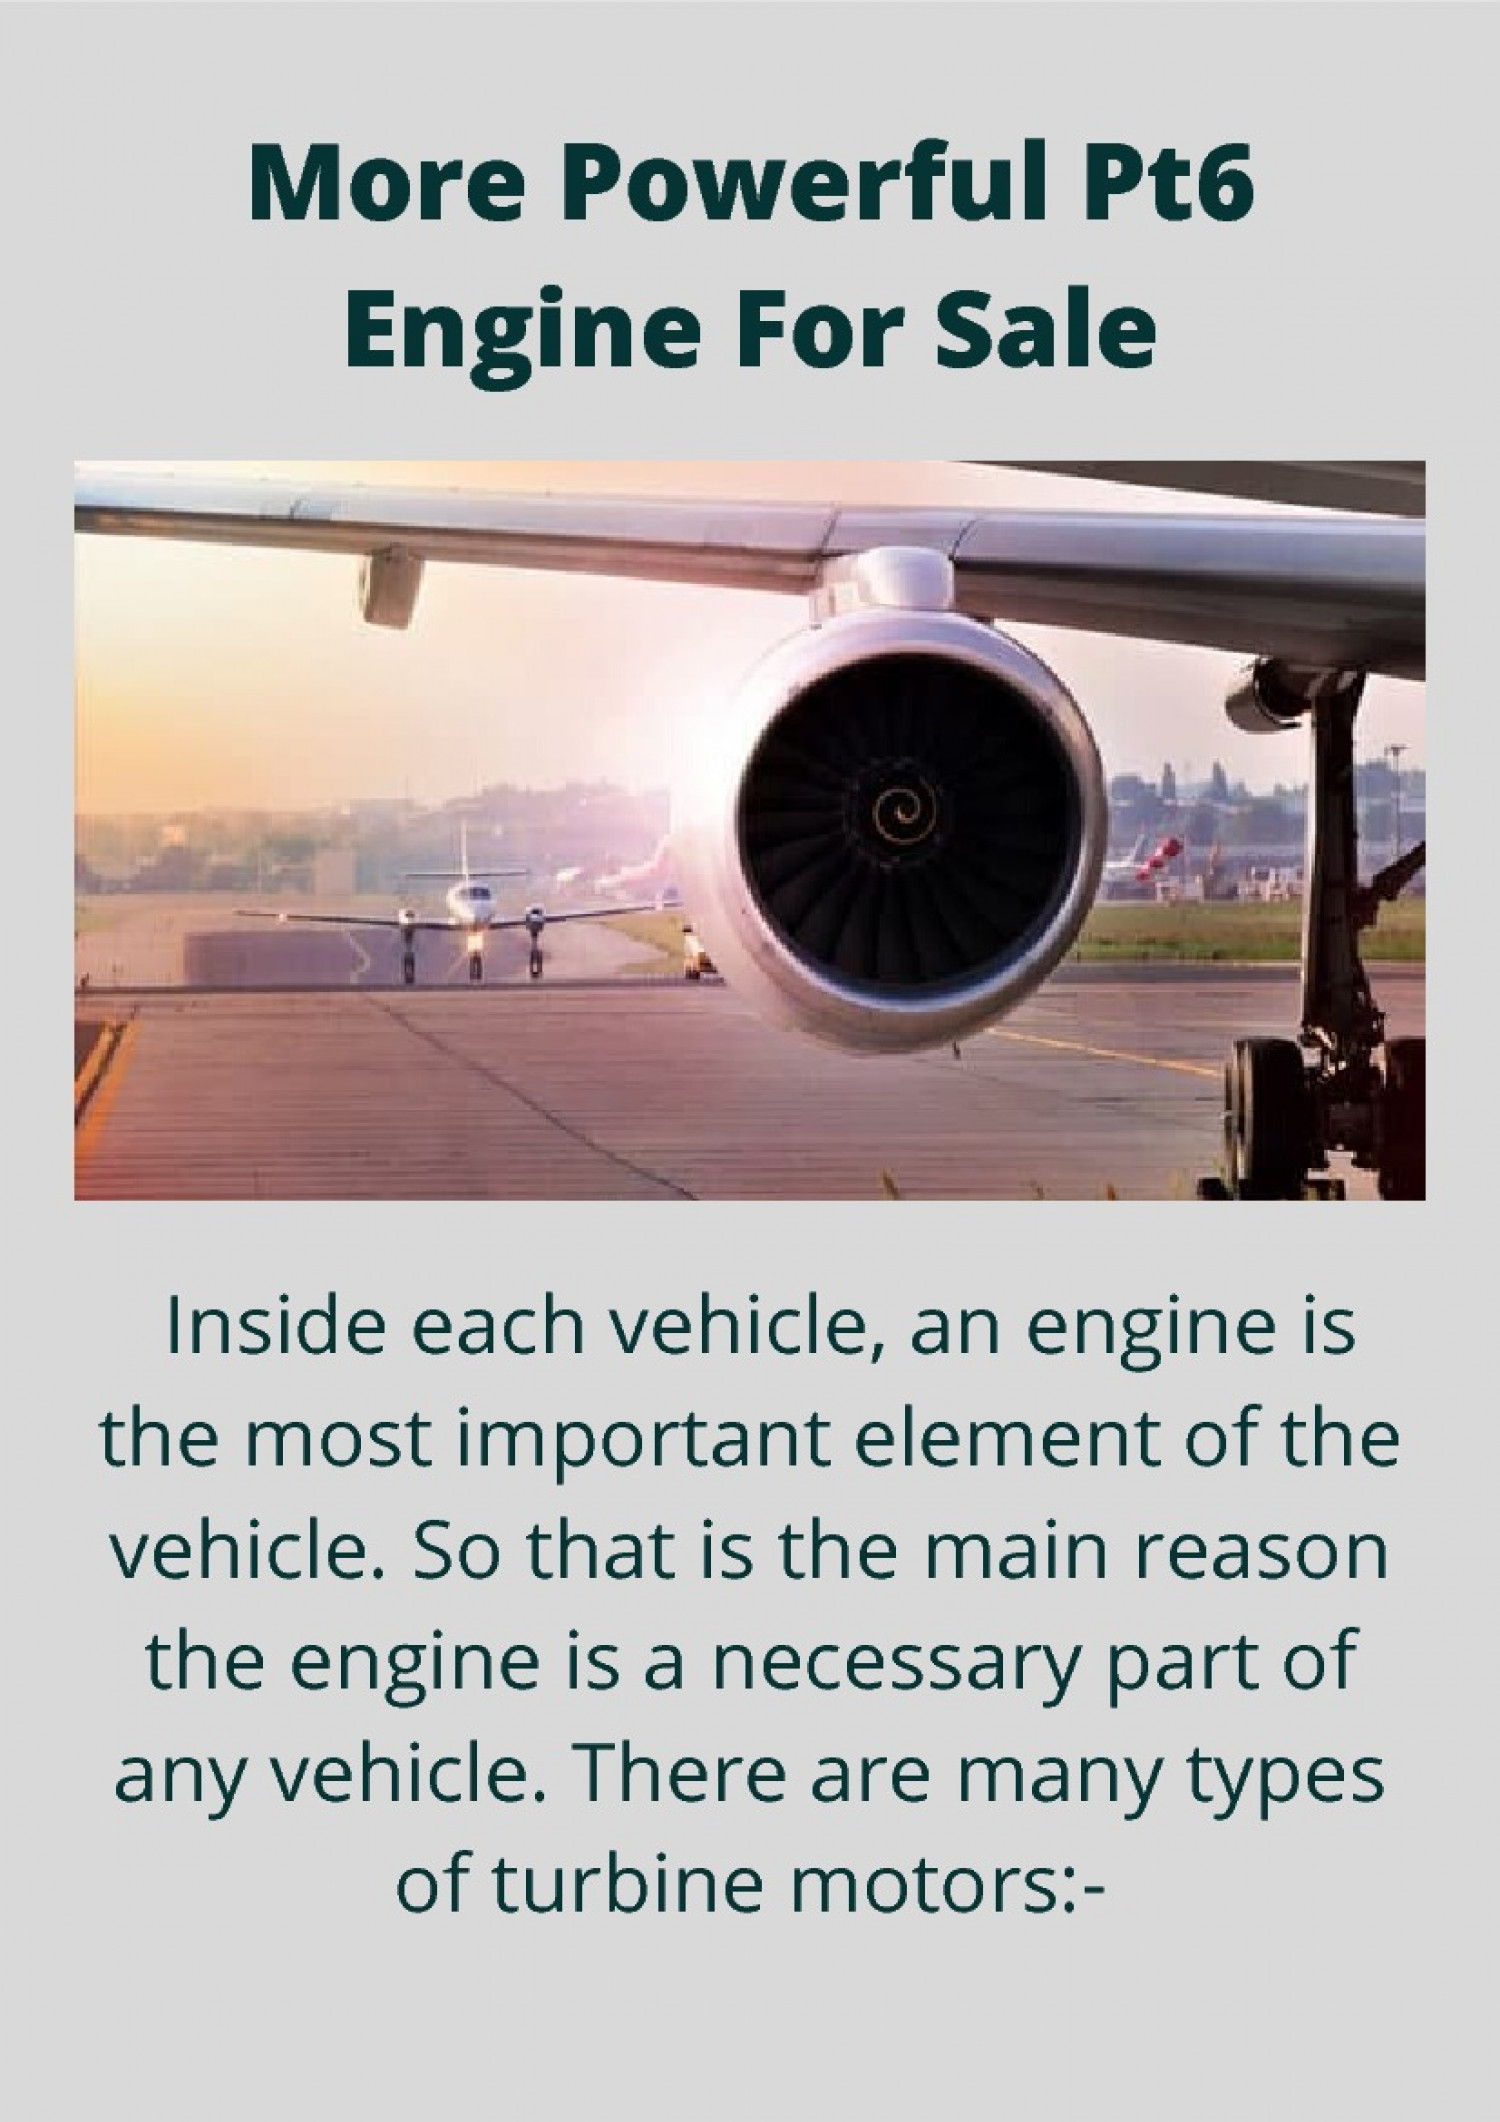 Powerful Pt6 Engine For Sale Infographic